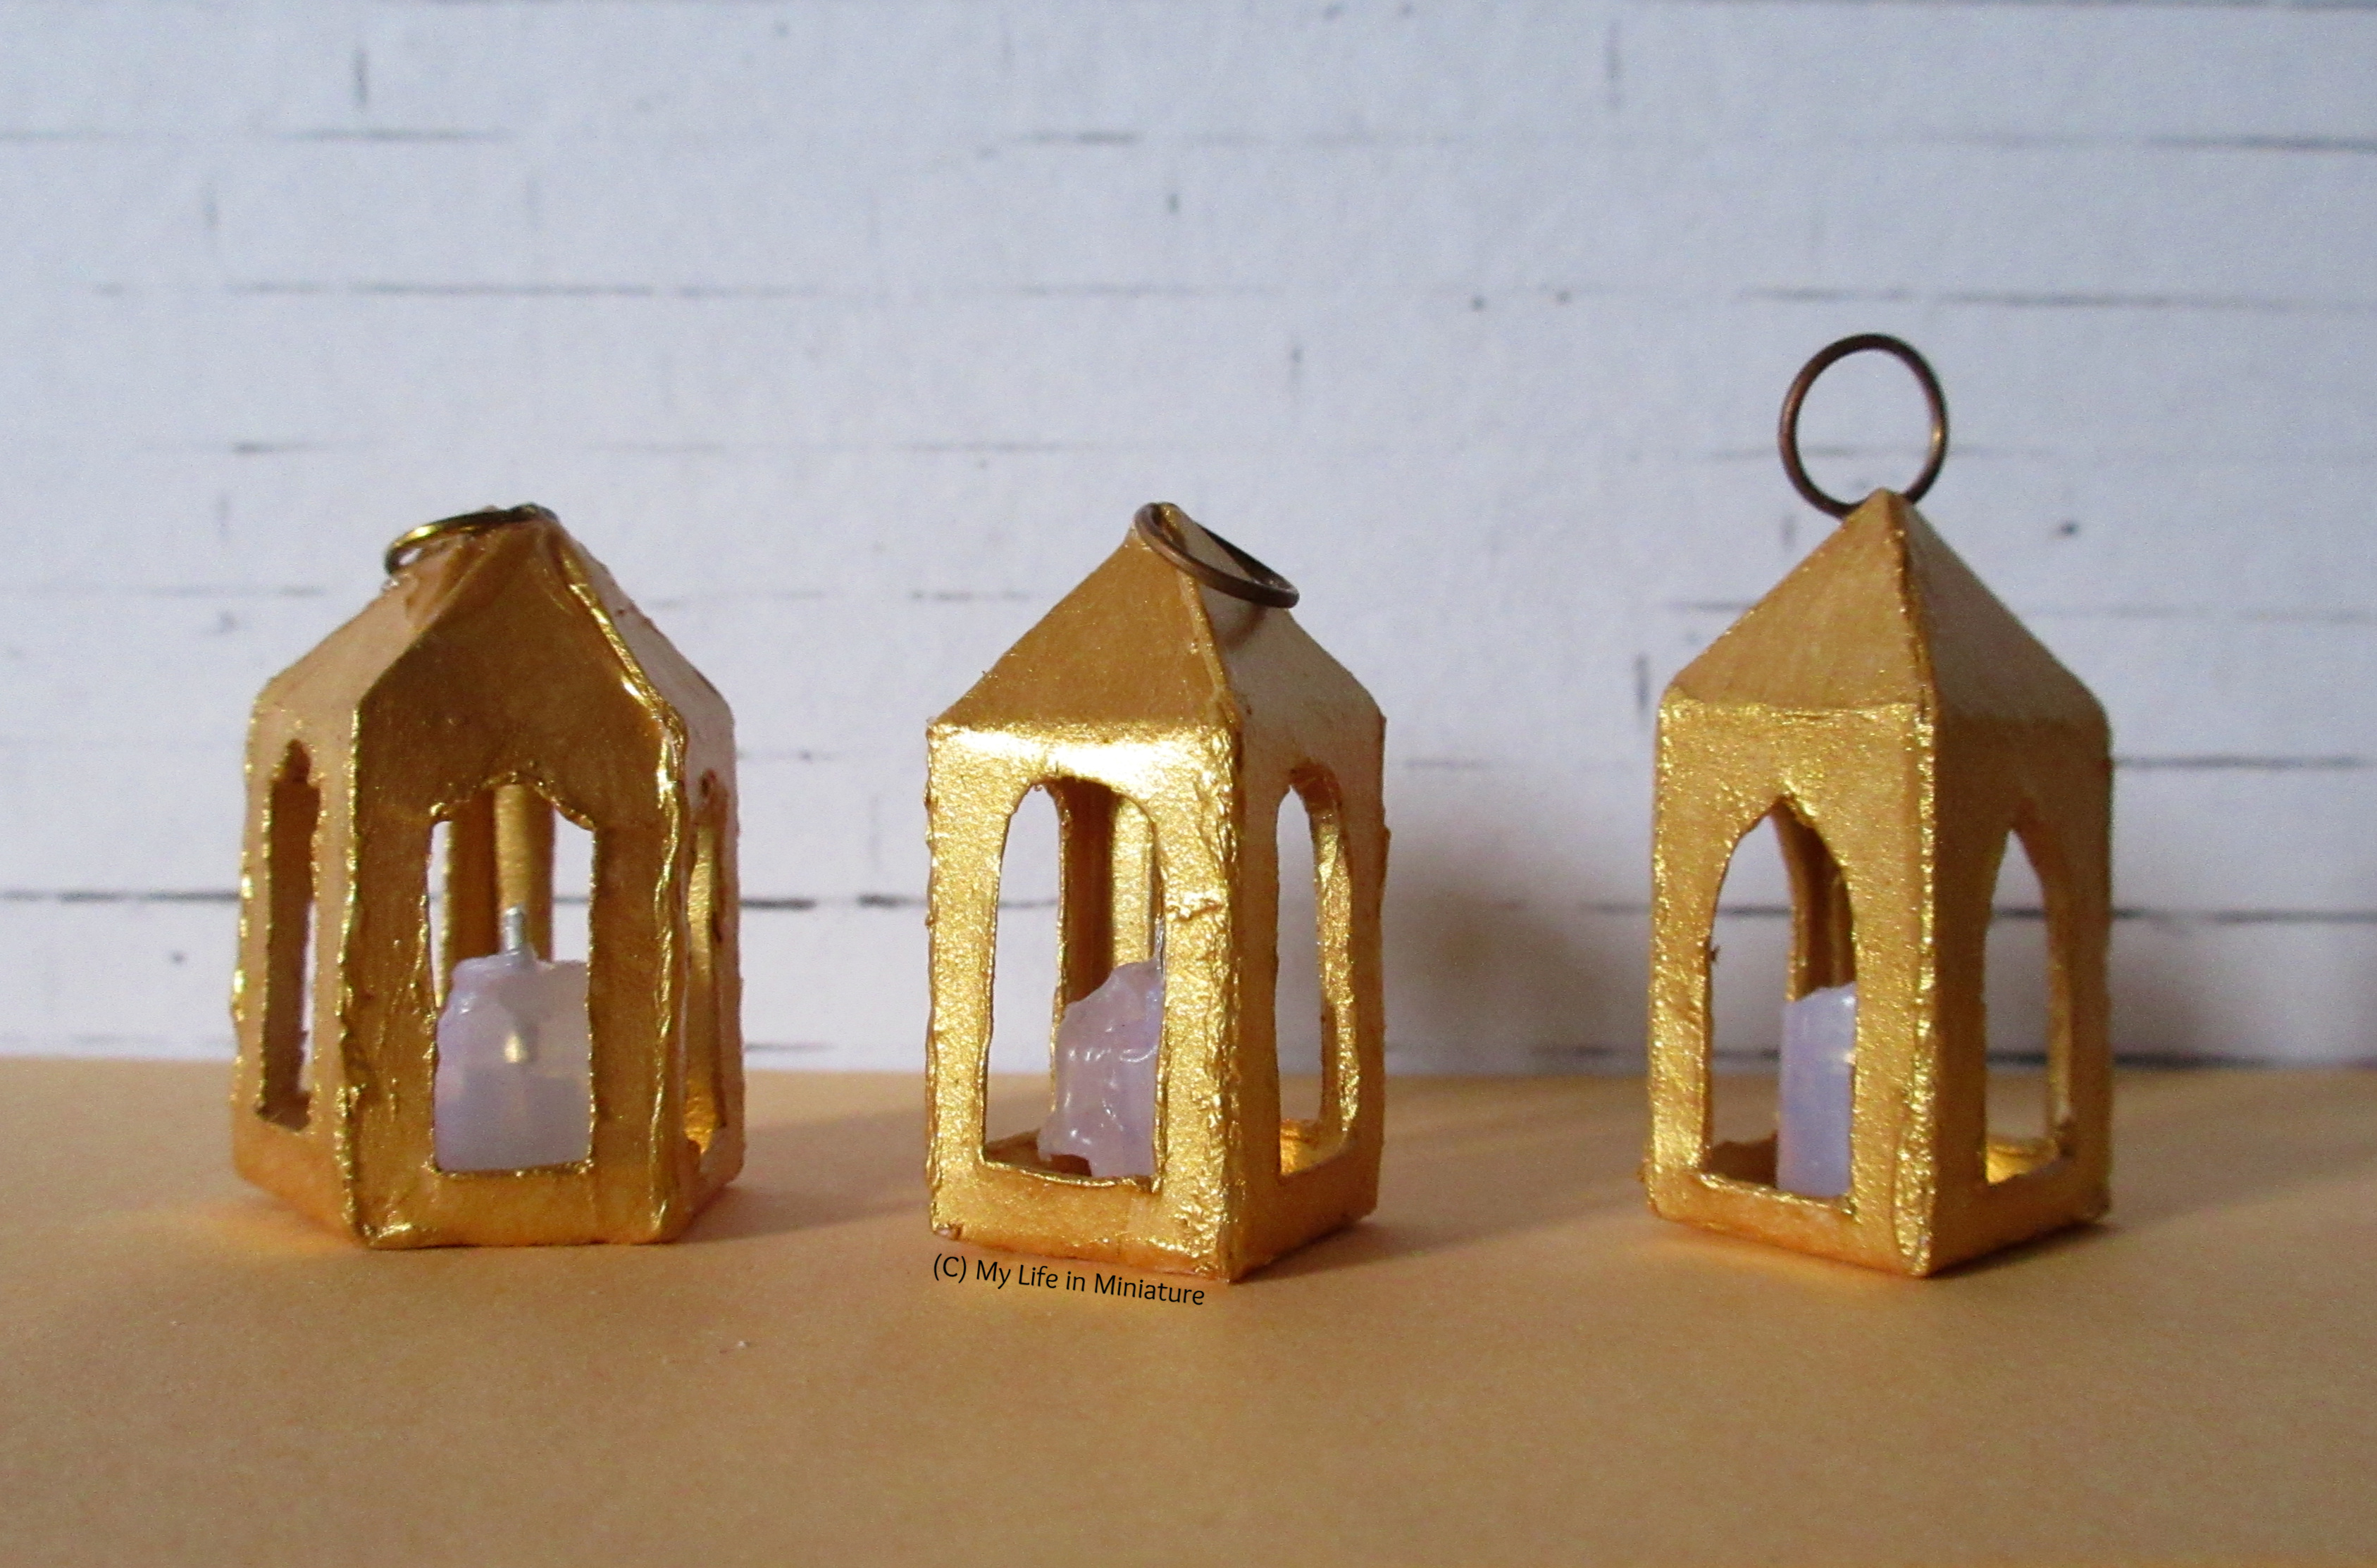 Three gold lanterns sit in front of a white brick background. A pentagonal one is on the far left, next to two square ones. One of the square ones has a ring that stands up. All three have candles inside.